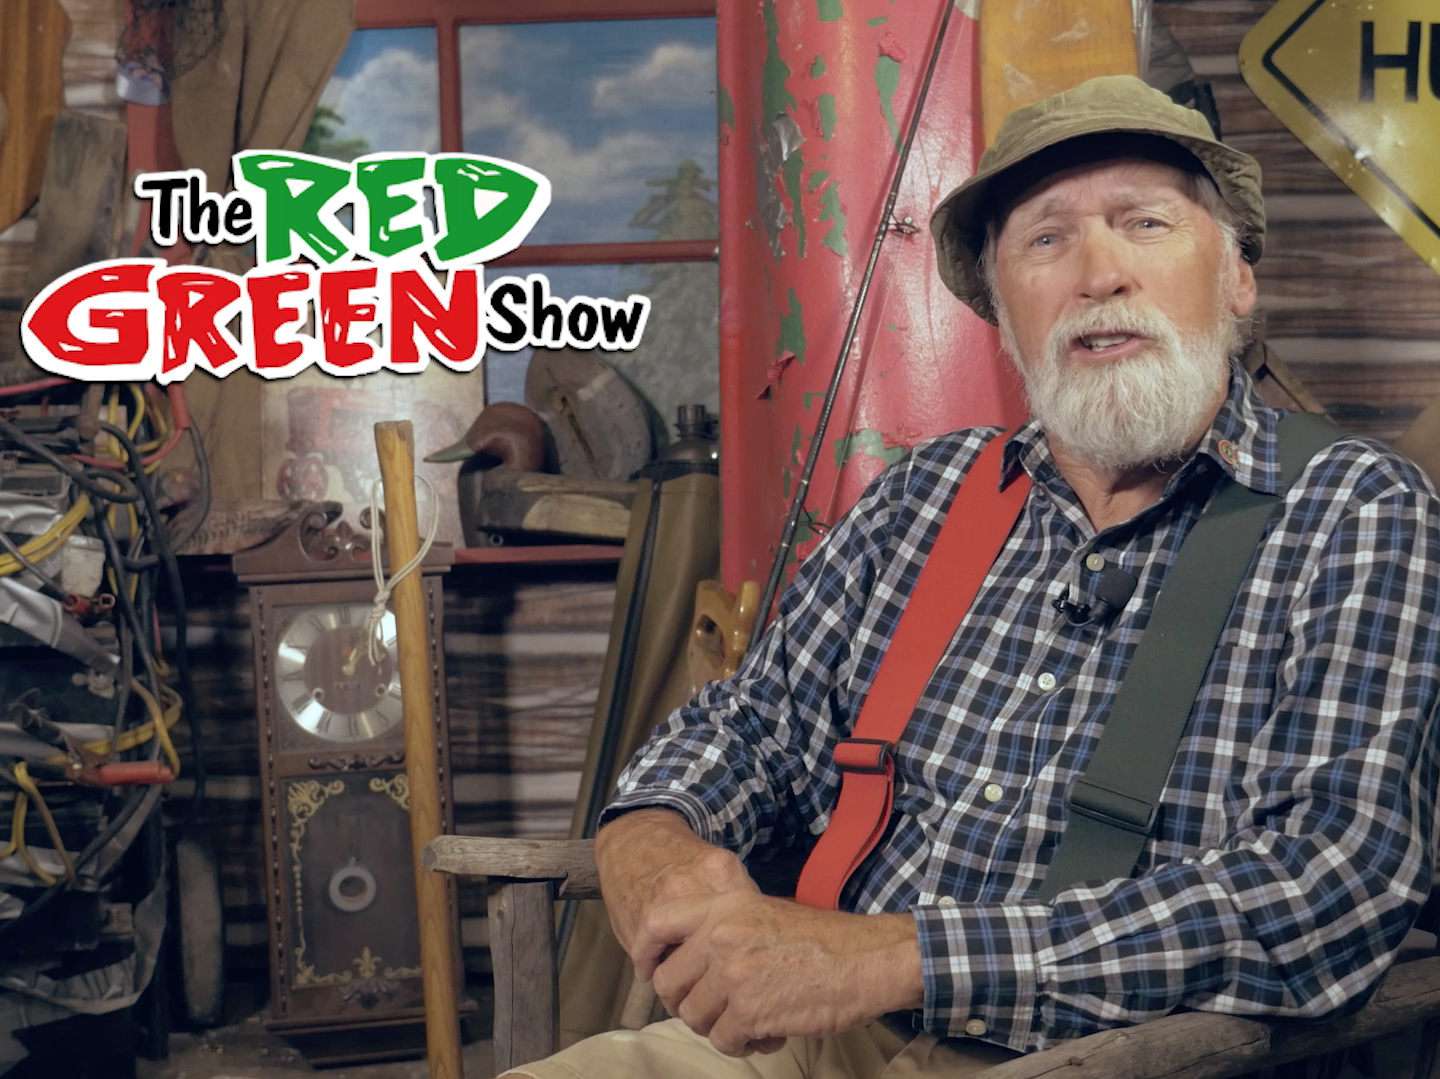 """Steve Smith says """"The Red Green Show,"""" ran for 15 years for a reason. """"The reason it caught on is because people have a Red Green in their family,"""" Smith says."""